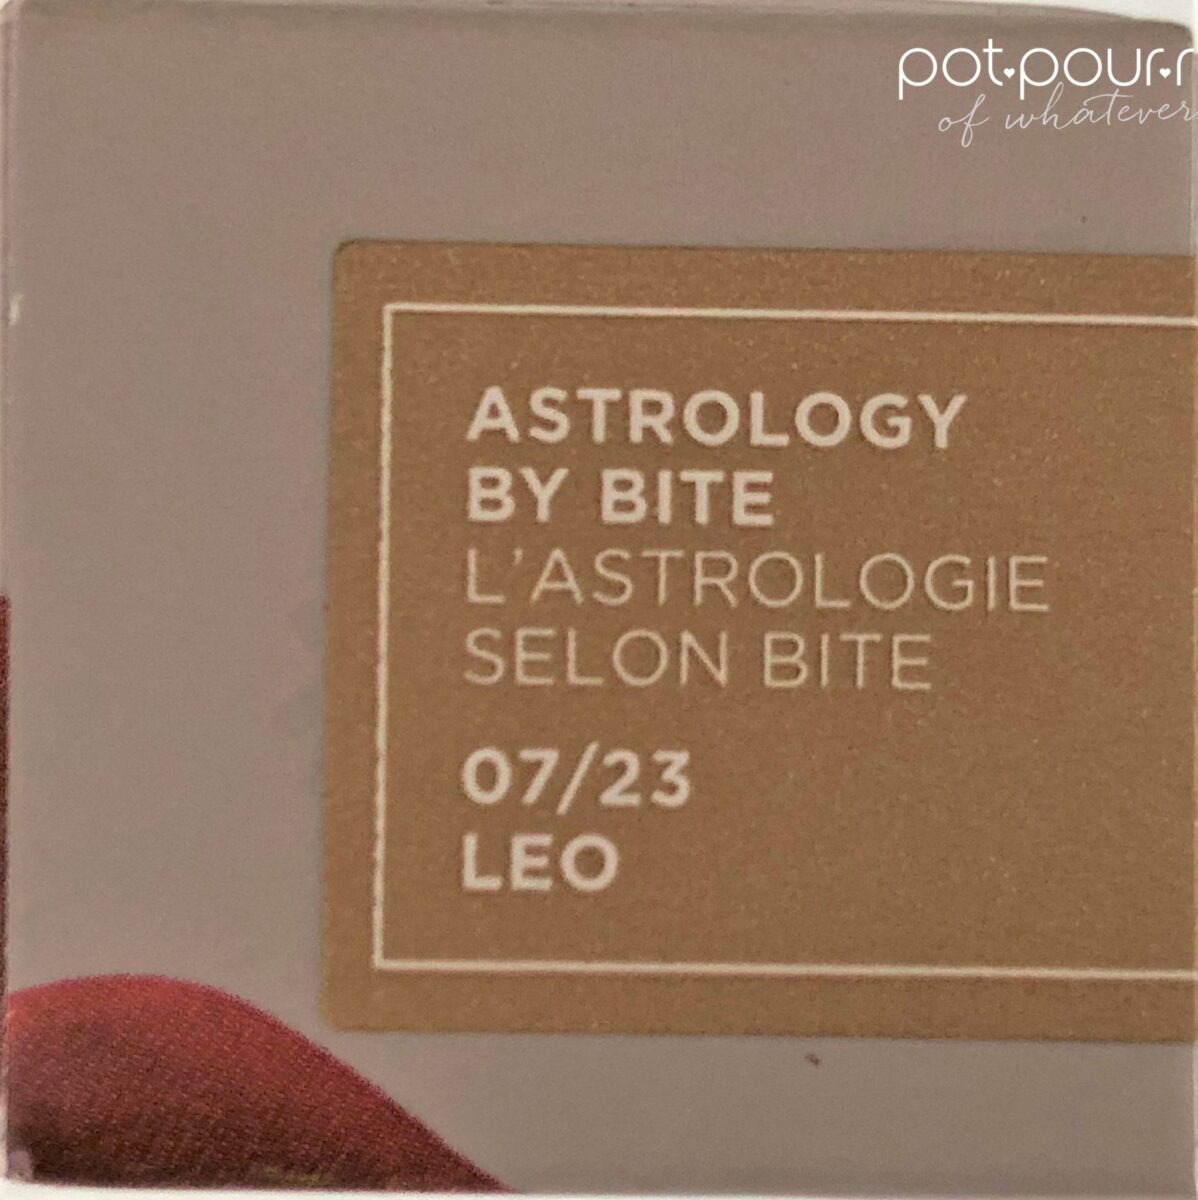 PACKAGING BOX WITH LEO STICKER